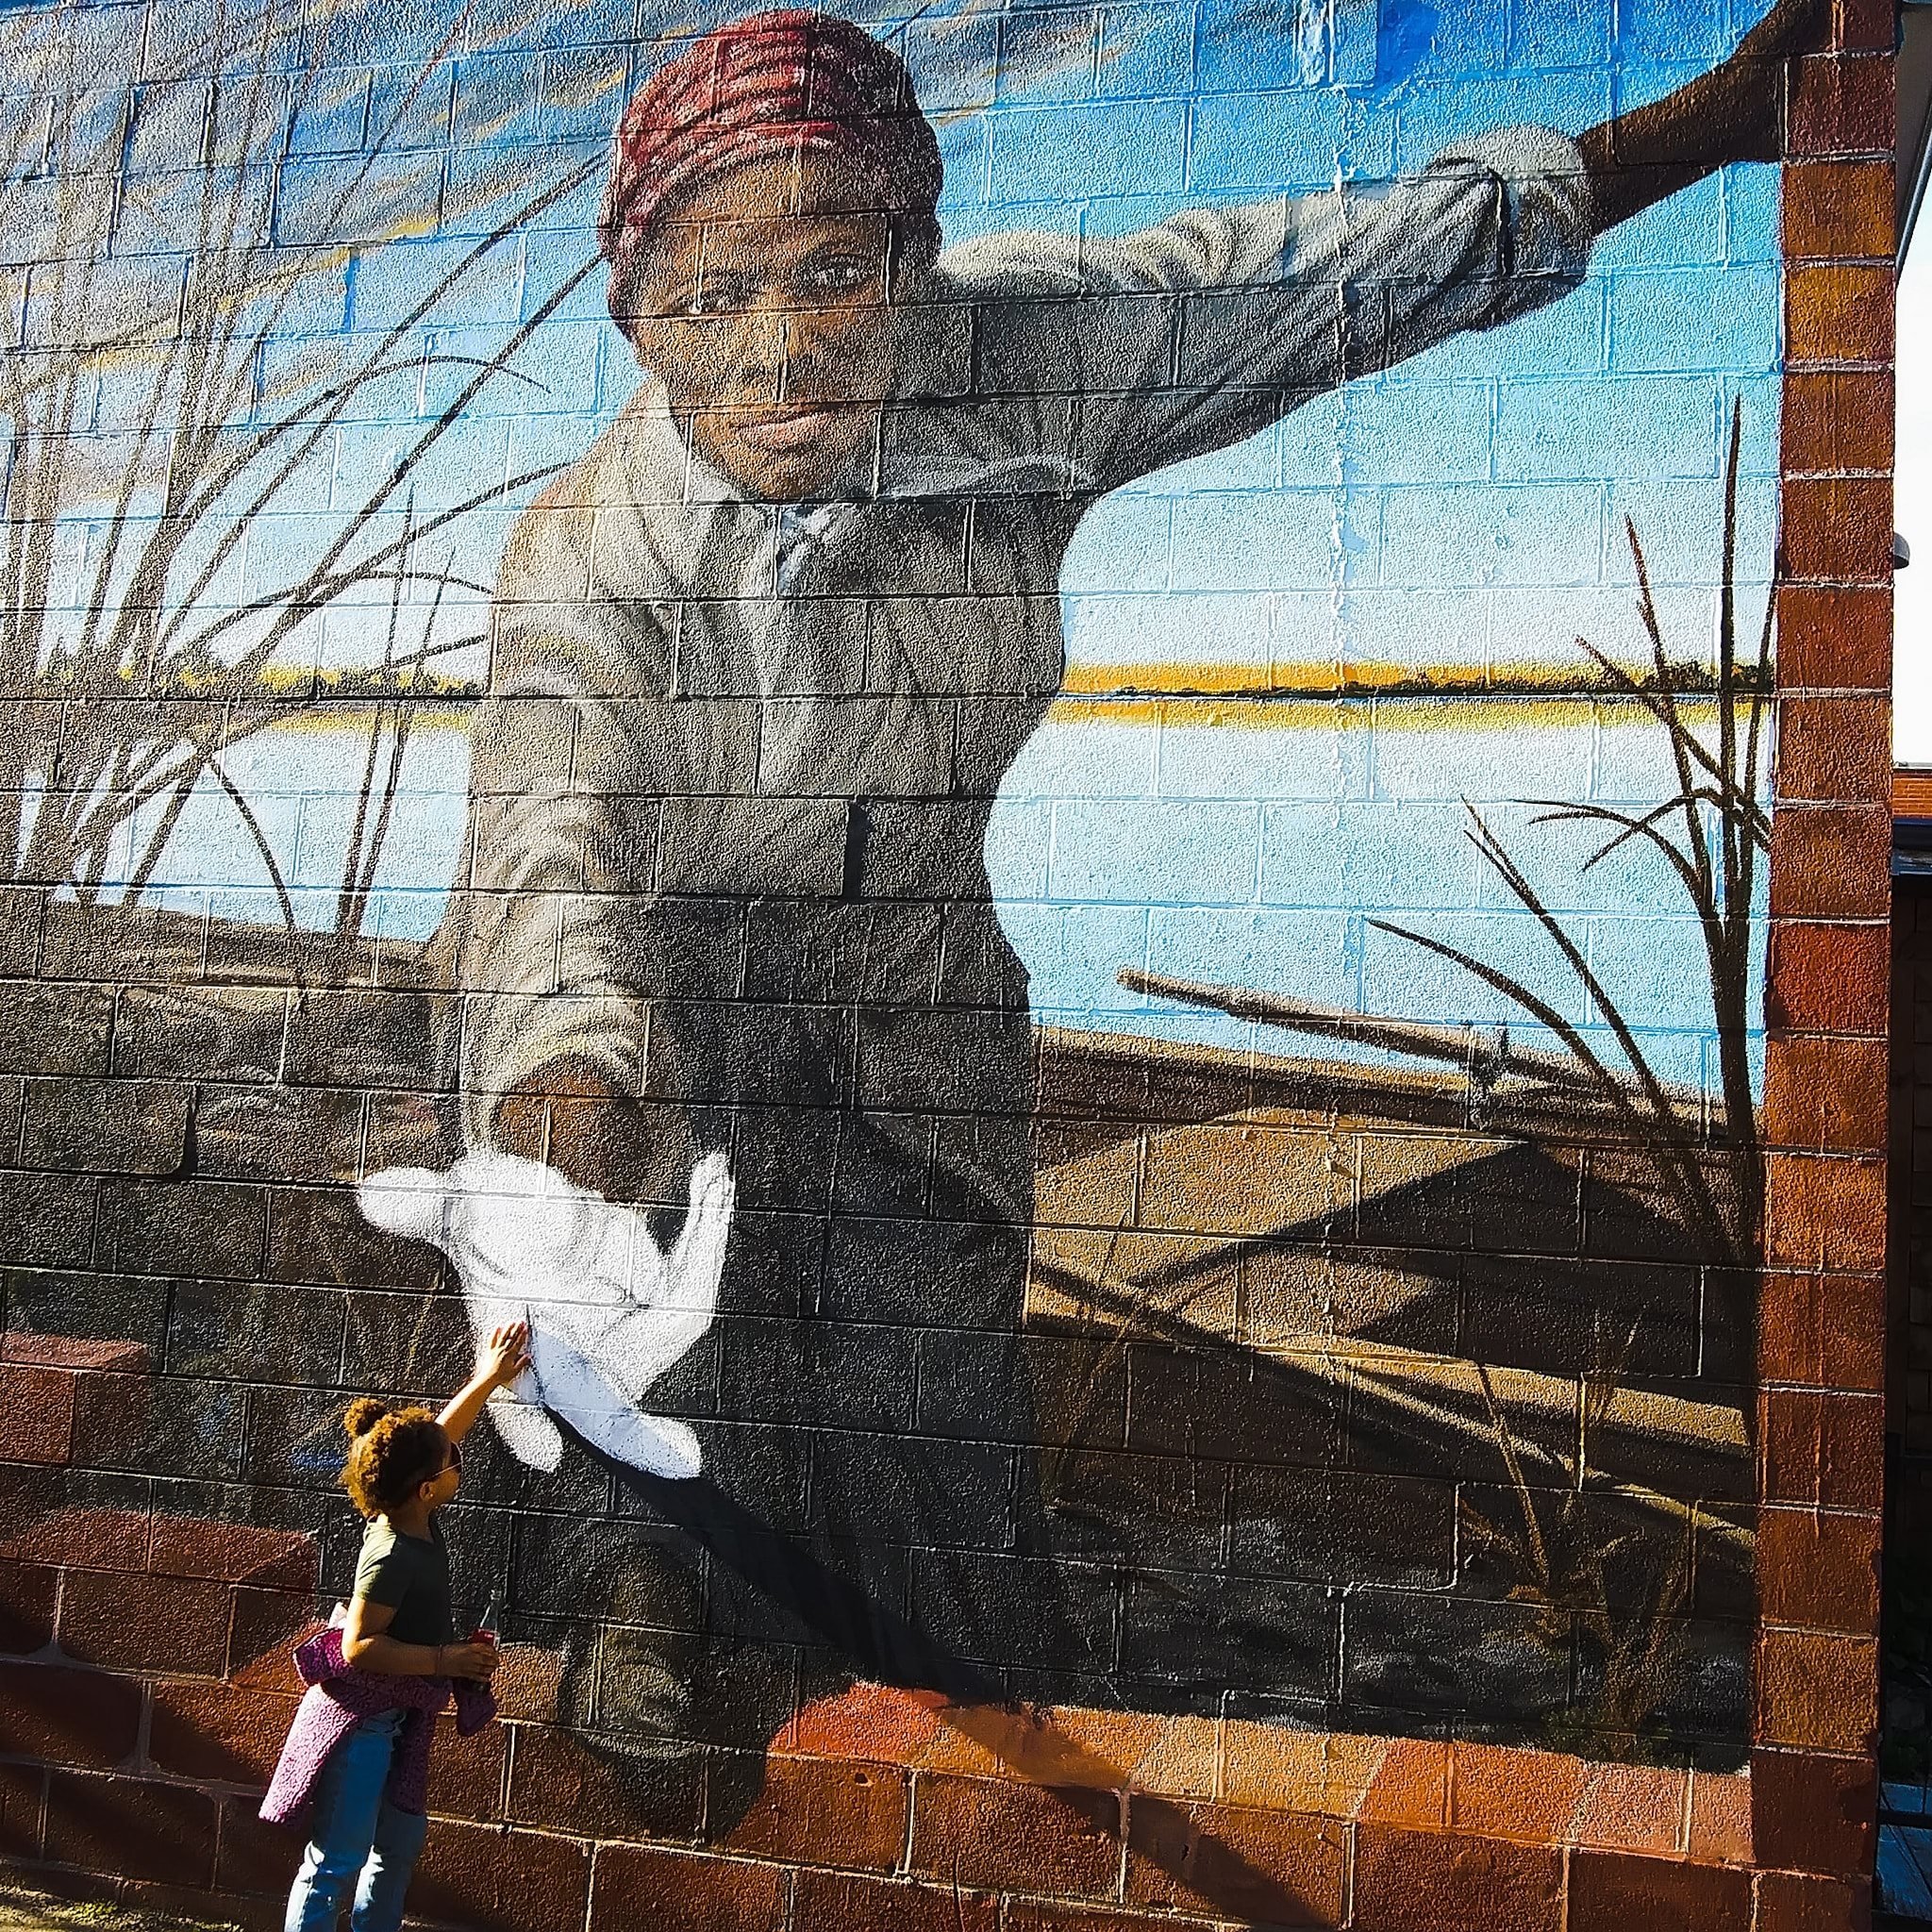 Rosato Harriet Tubman mural attracts national attention